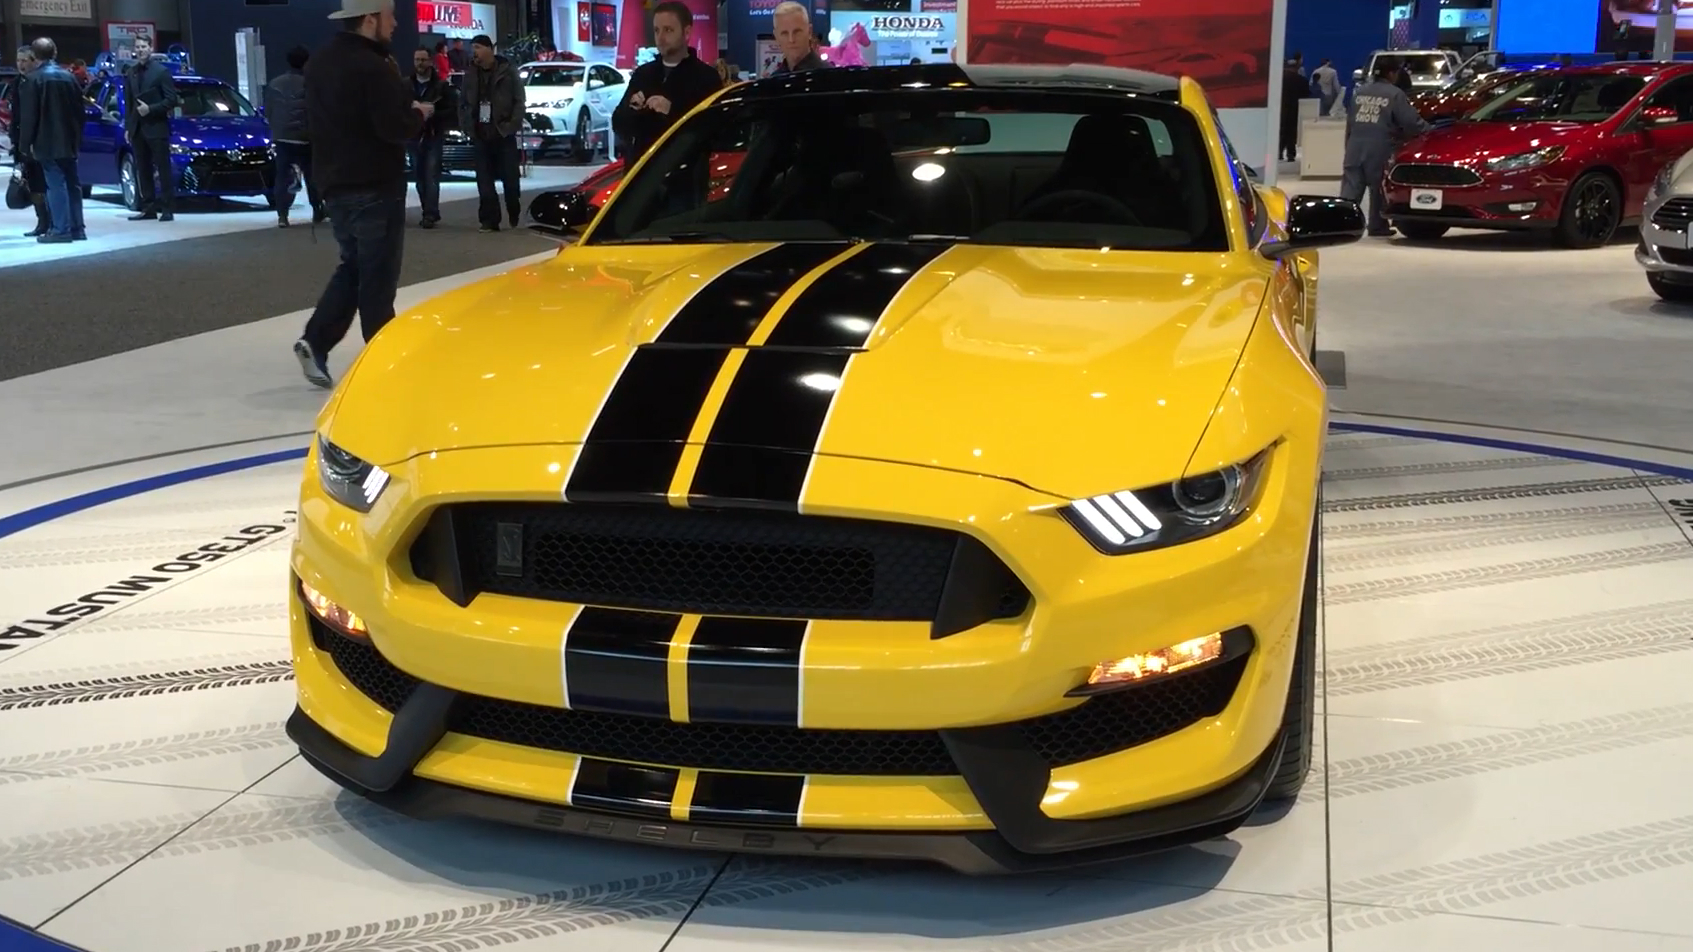 Ford Shelby GT350 Mustang | 2015 Chicago Auto Show | Autoblog Short Cuts